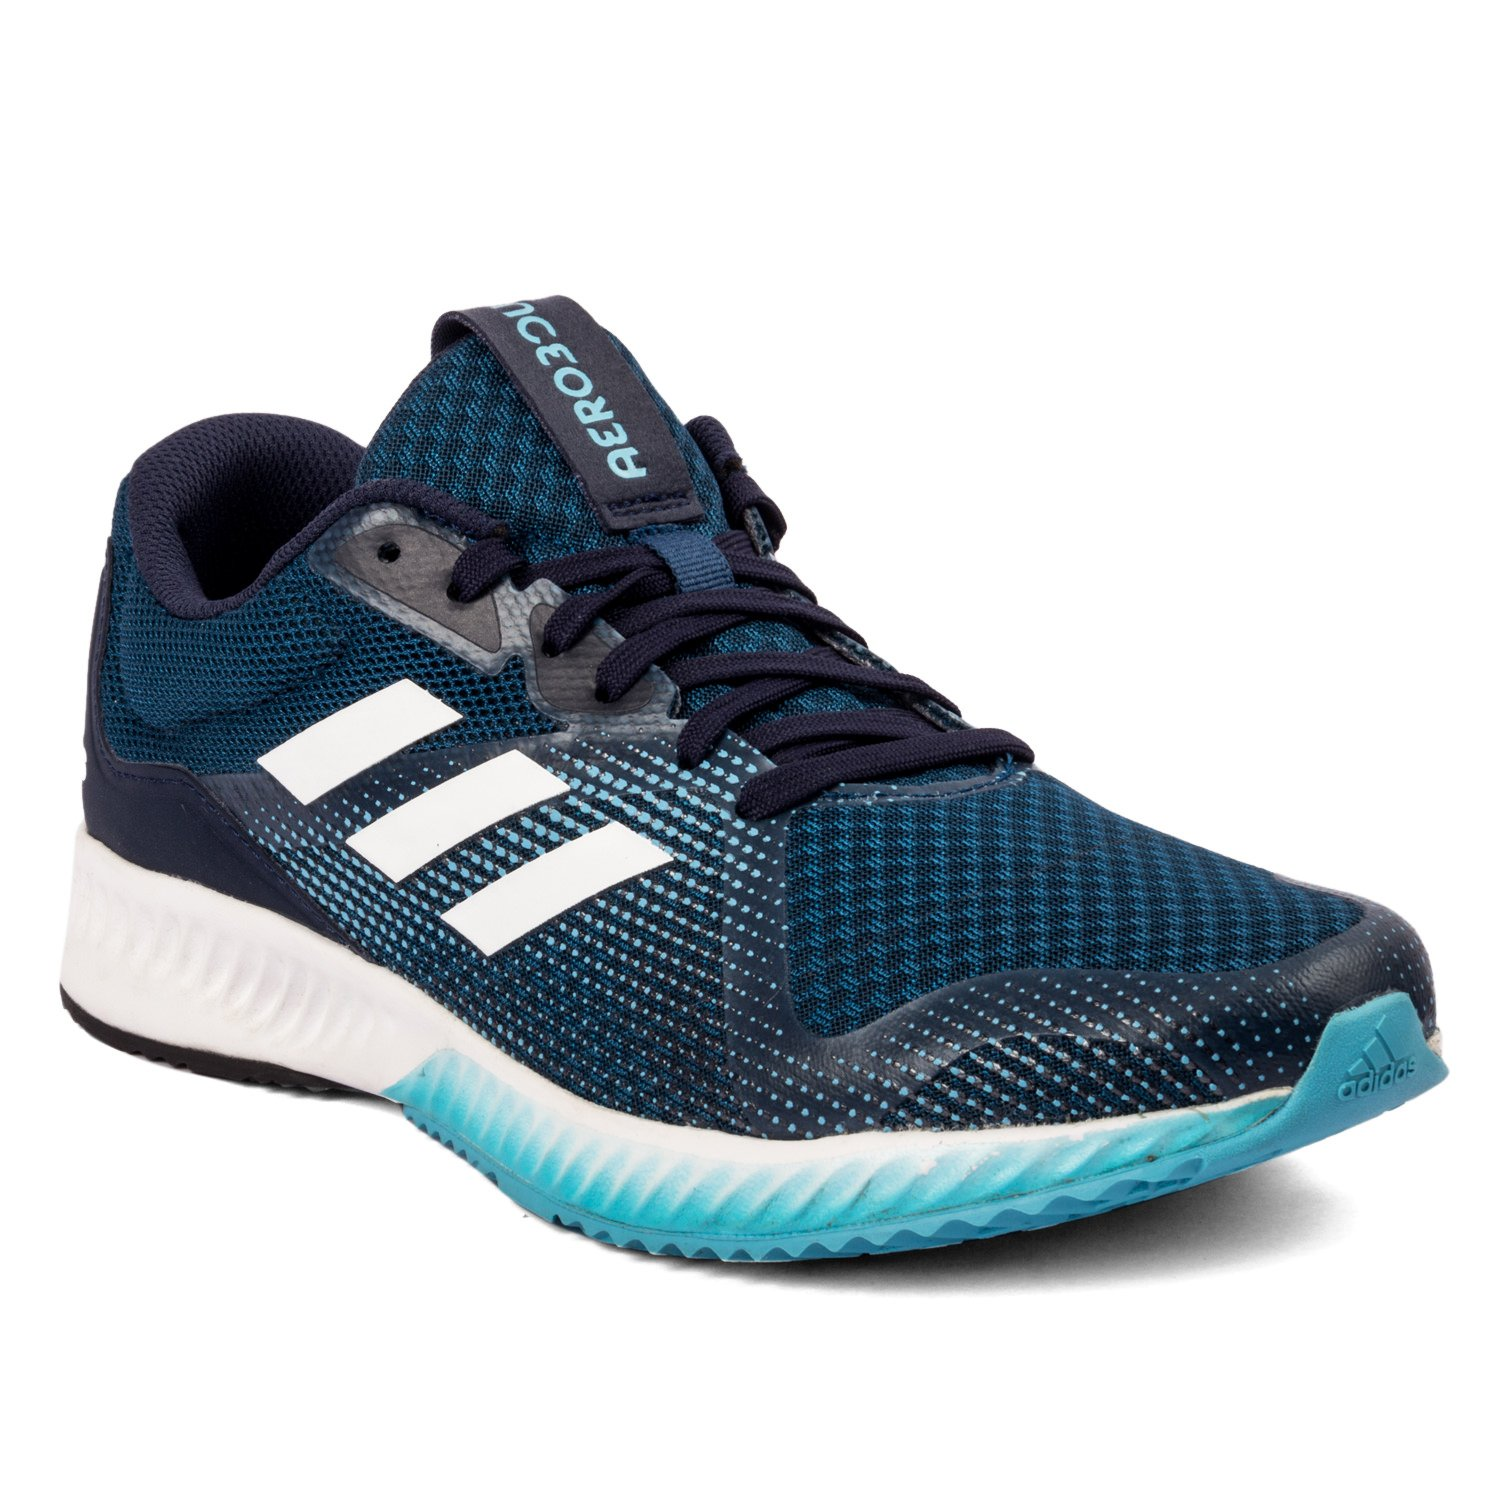 a251c369ff498 Adidas Aerobounce Racer M Running Sports Shoes for Men-Uk-11: Buy ...